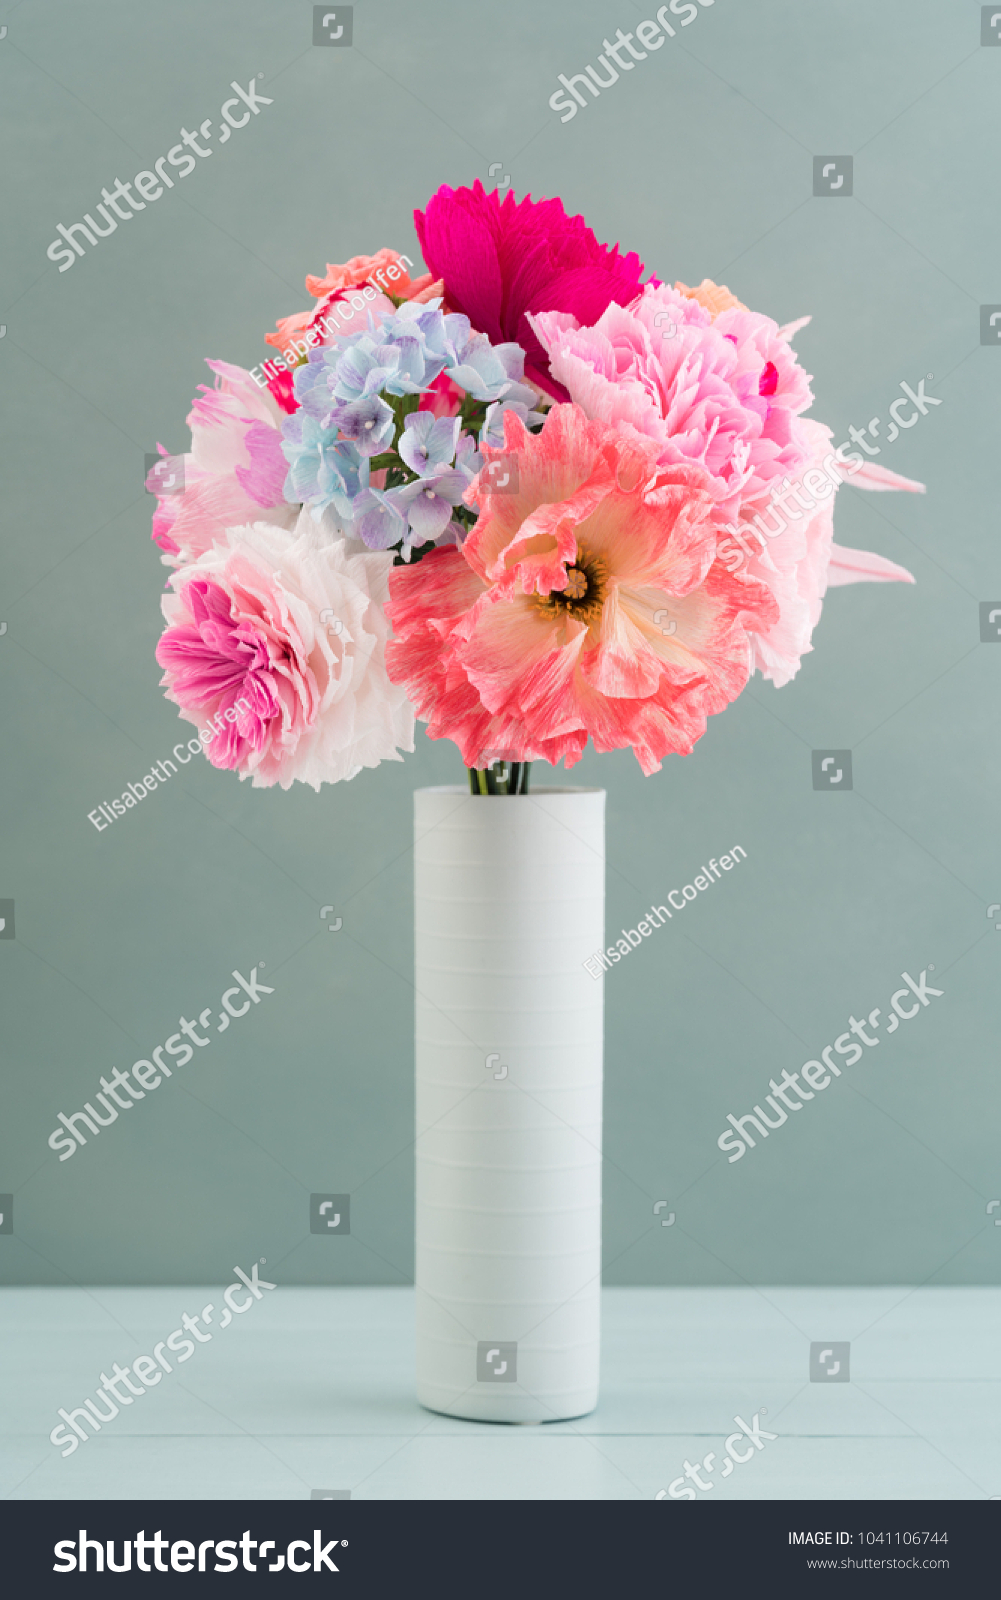 Crepe Paper Flower Bouquet Peonies Hyacinth Stock Photo (Royalty ...